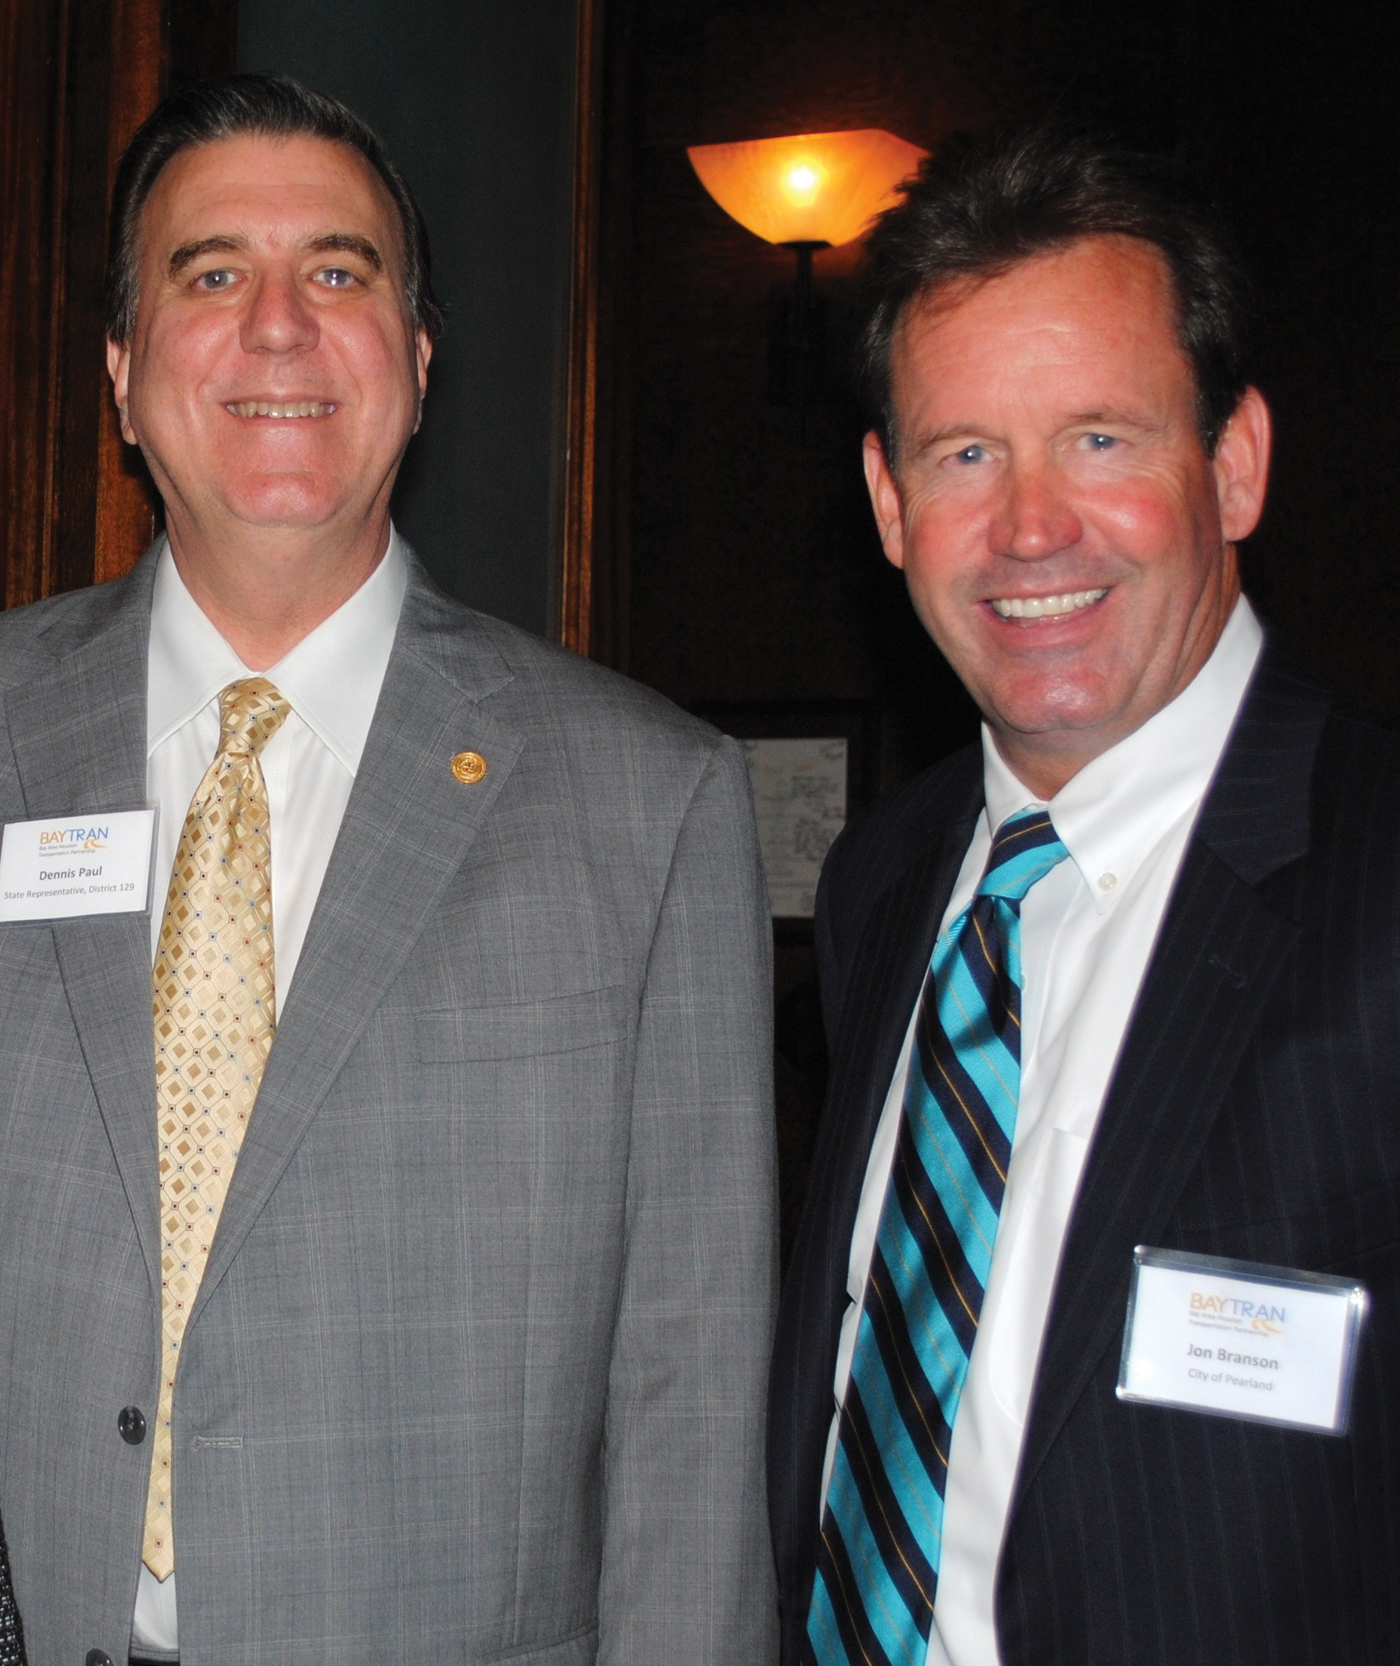 Pearland Deputy City Manager and BayTran Chairman Jon Branson, right, welcomes State Rep. Dennis Paul to the luncheon at Cullen's Upscale Grille.